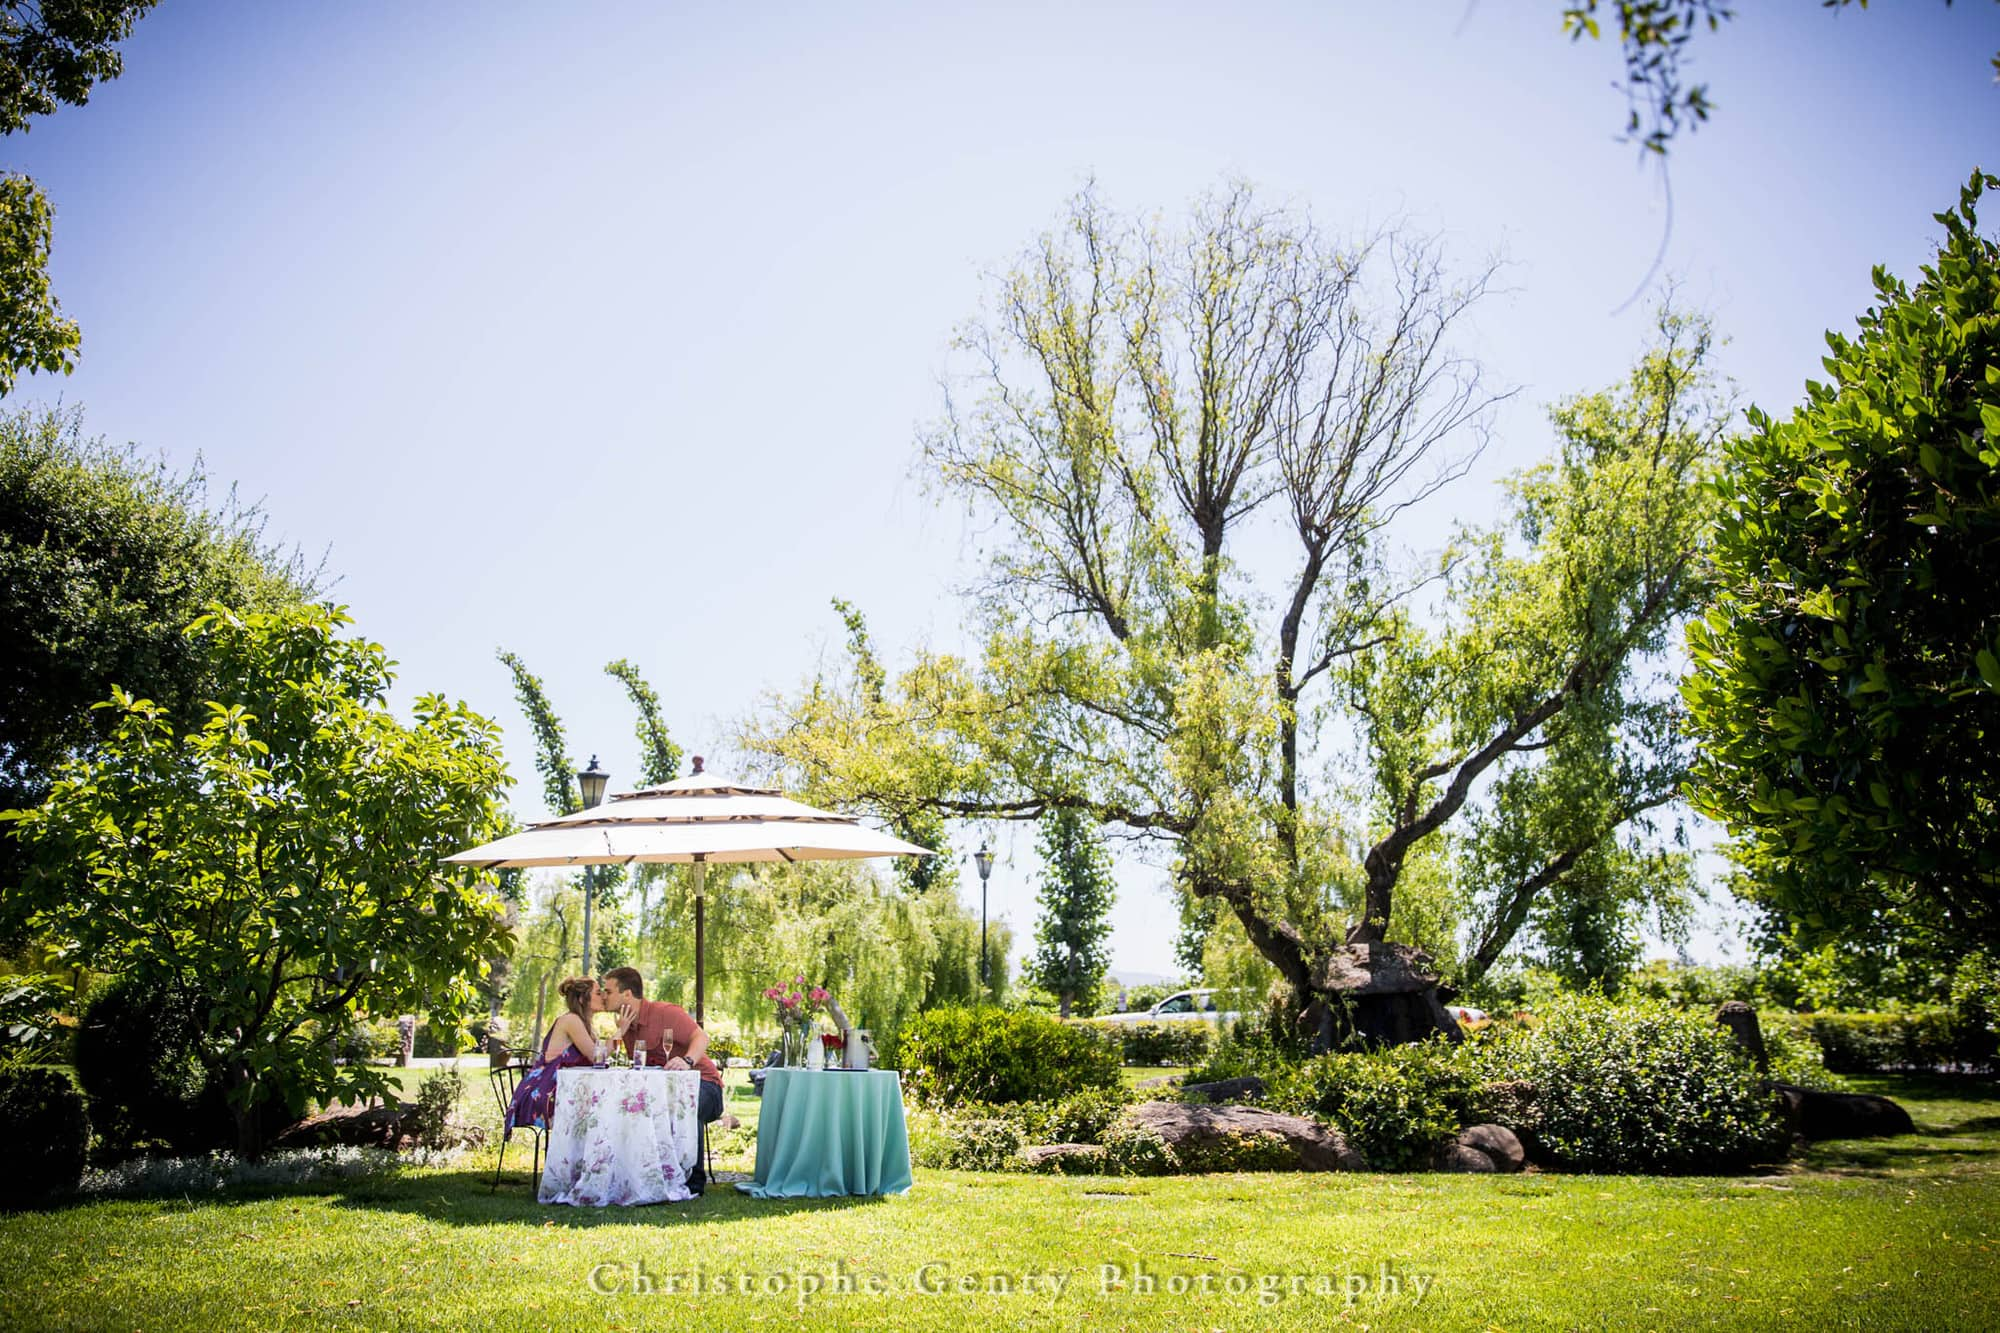 Marriage Proposal Photography at Peju Province Winery, St Helena, CA